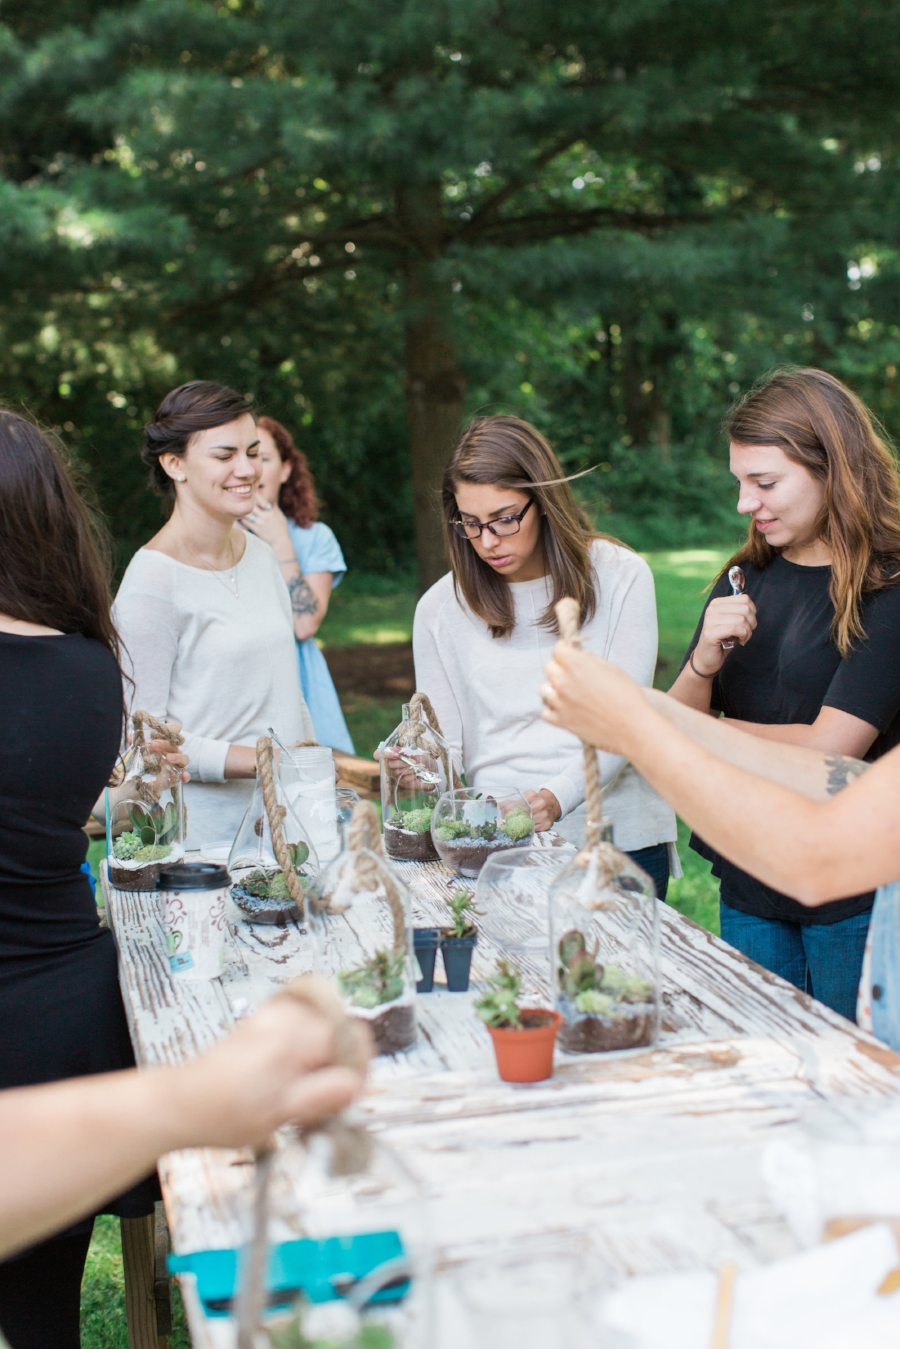 Terrarium Garden Workshop - OMC